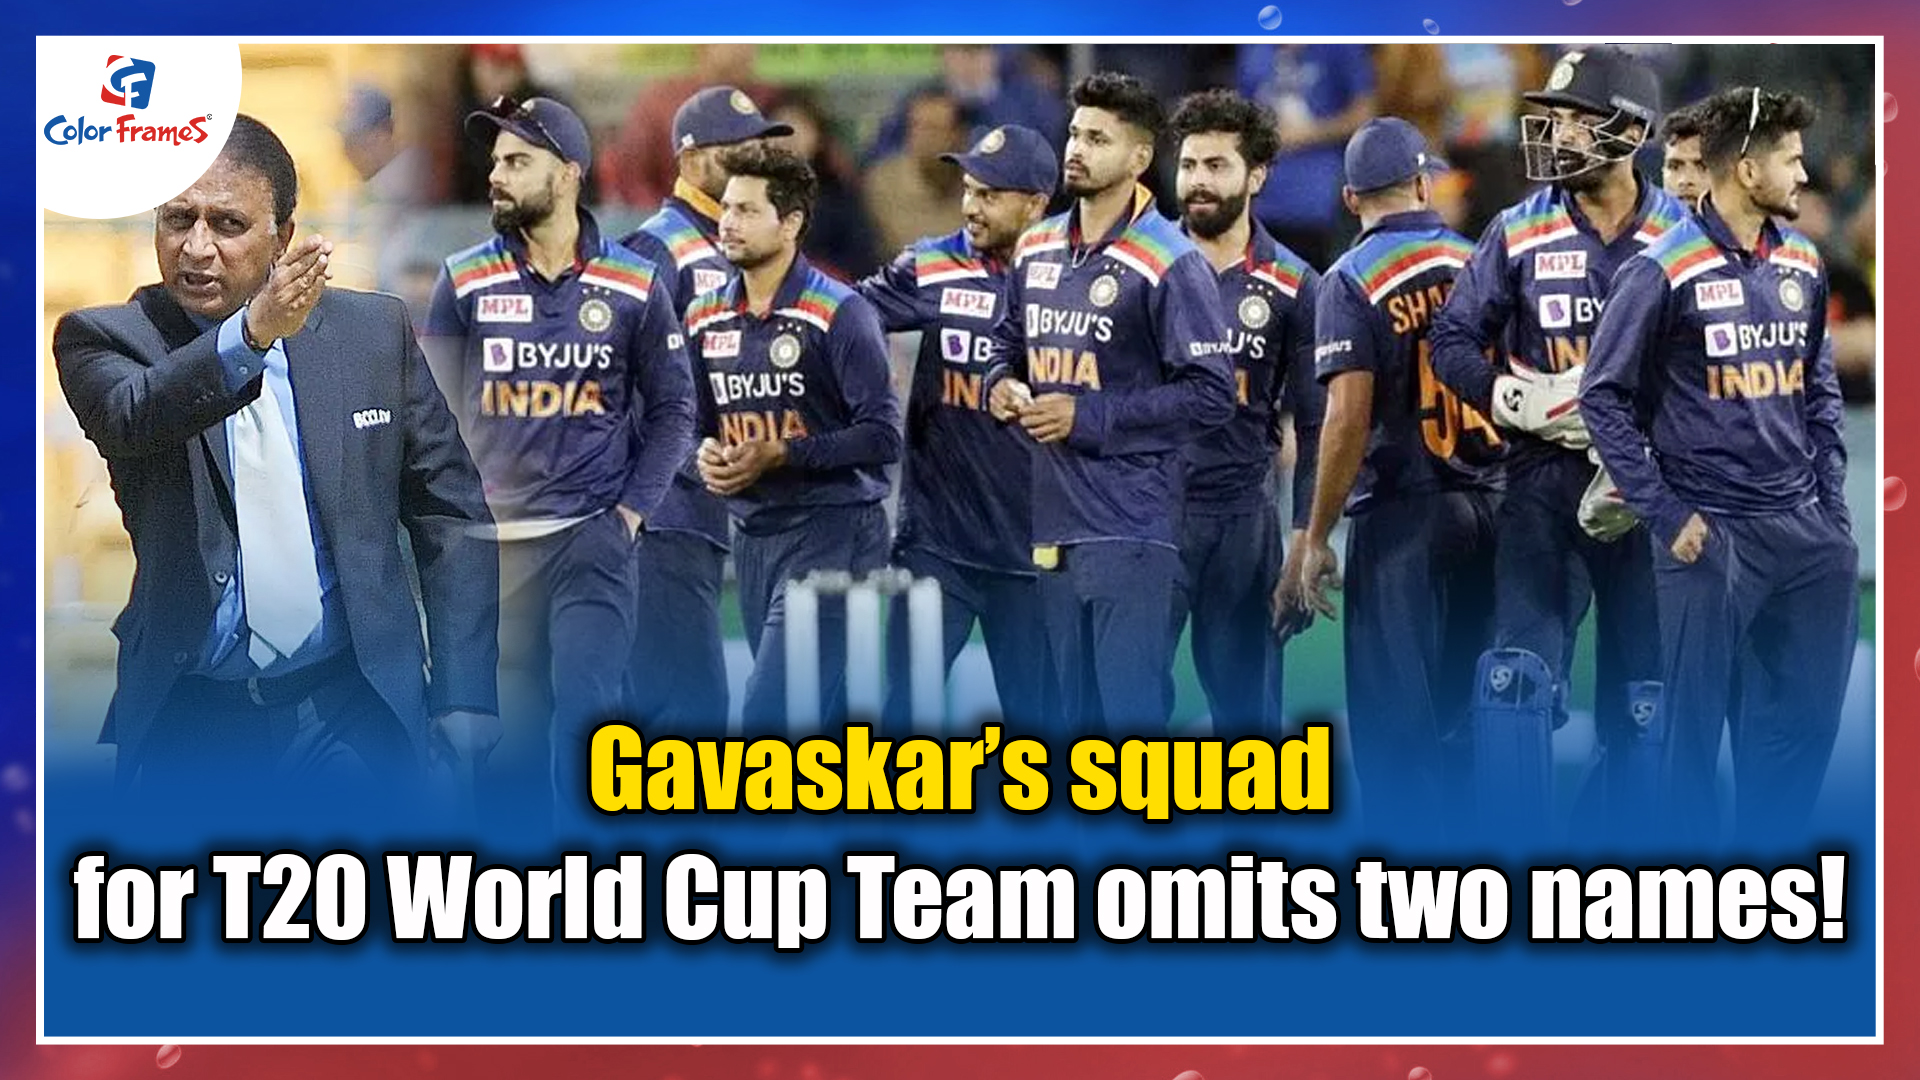 Gavaskar's squad for T20 World Cup Team omits two names!